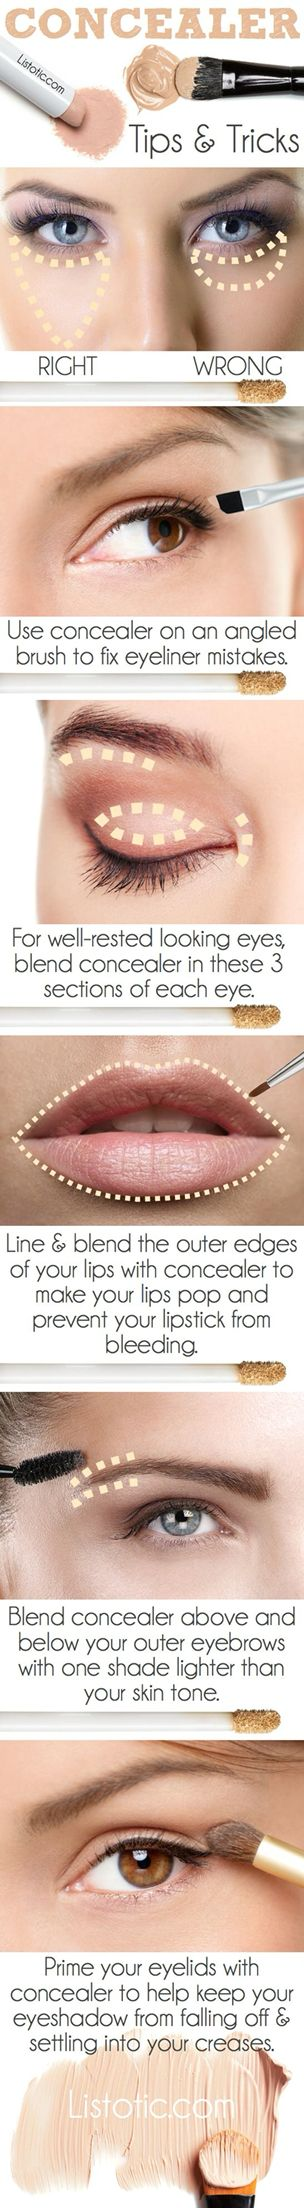 Handy tips for make up!